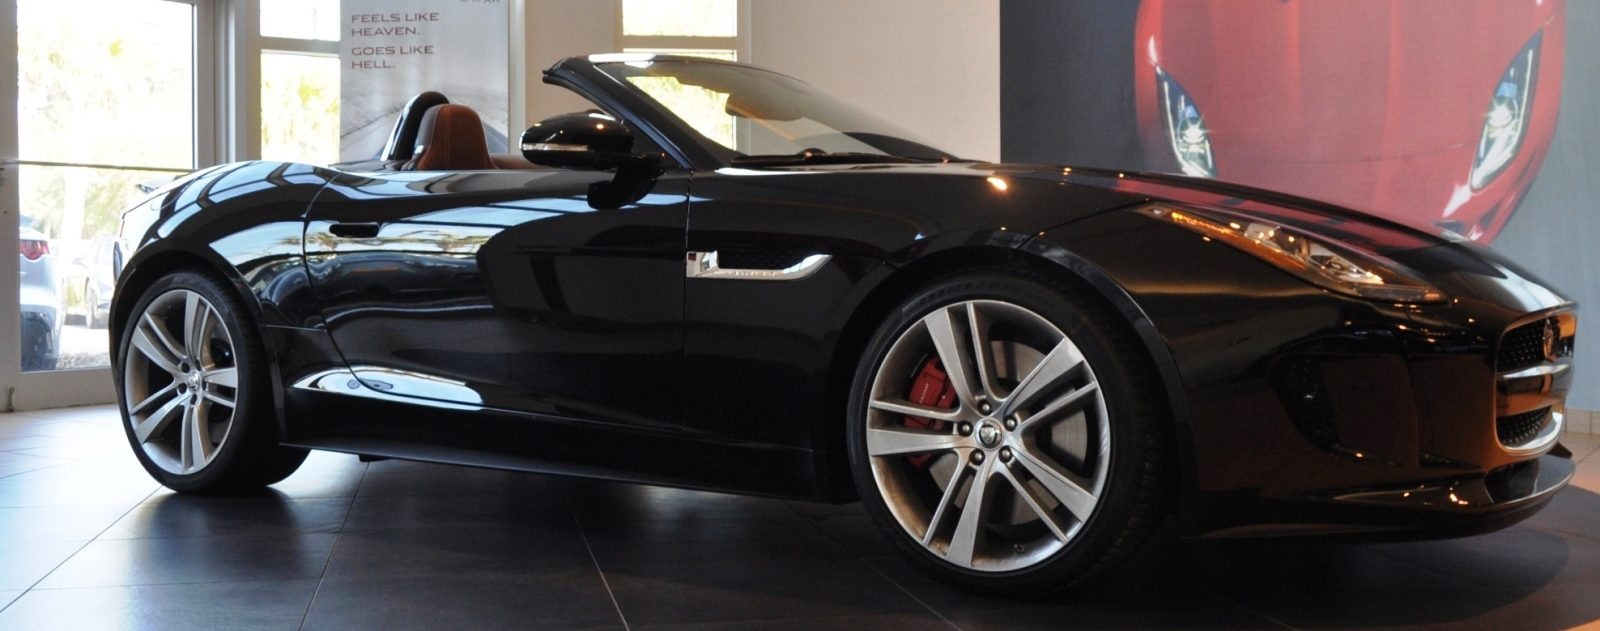 2014 Jaguar F-type S Cabrio - LED Lighting Demo and 60 High-Res Photos3